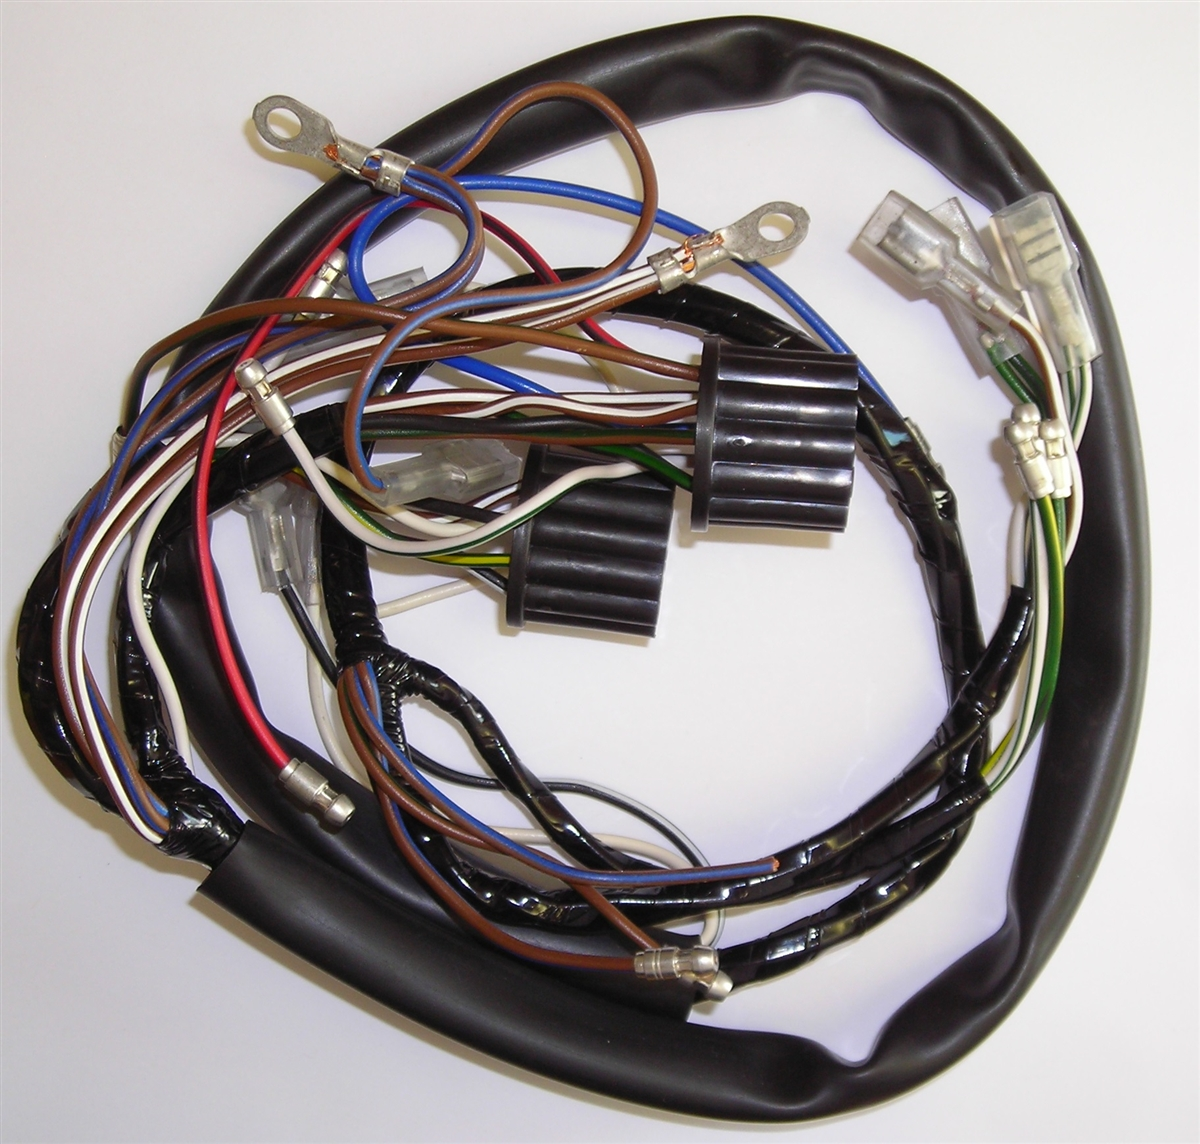 MC123PP 2 motorcycle wire harness turcolea com motorcycle wiring harness tubing at edmiracle.co